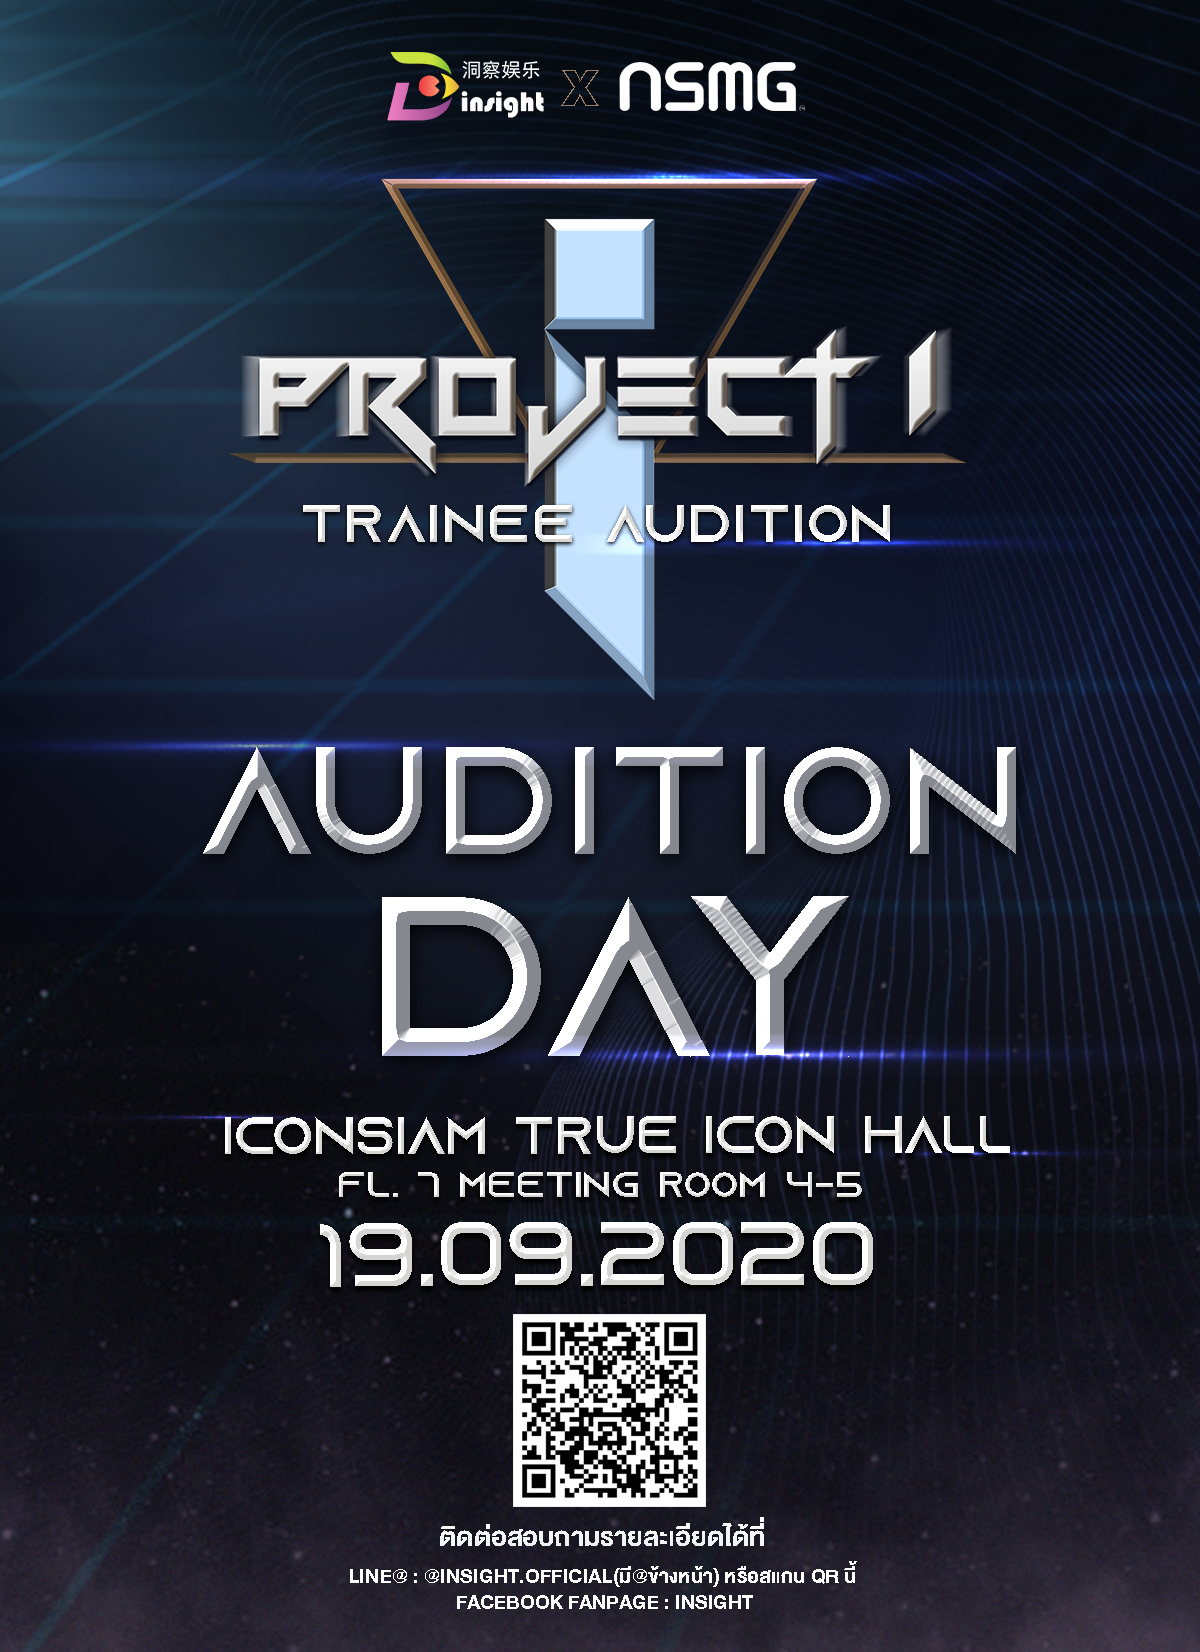 Project I Trainee Audition